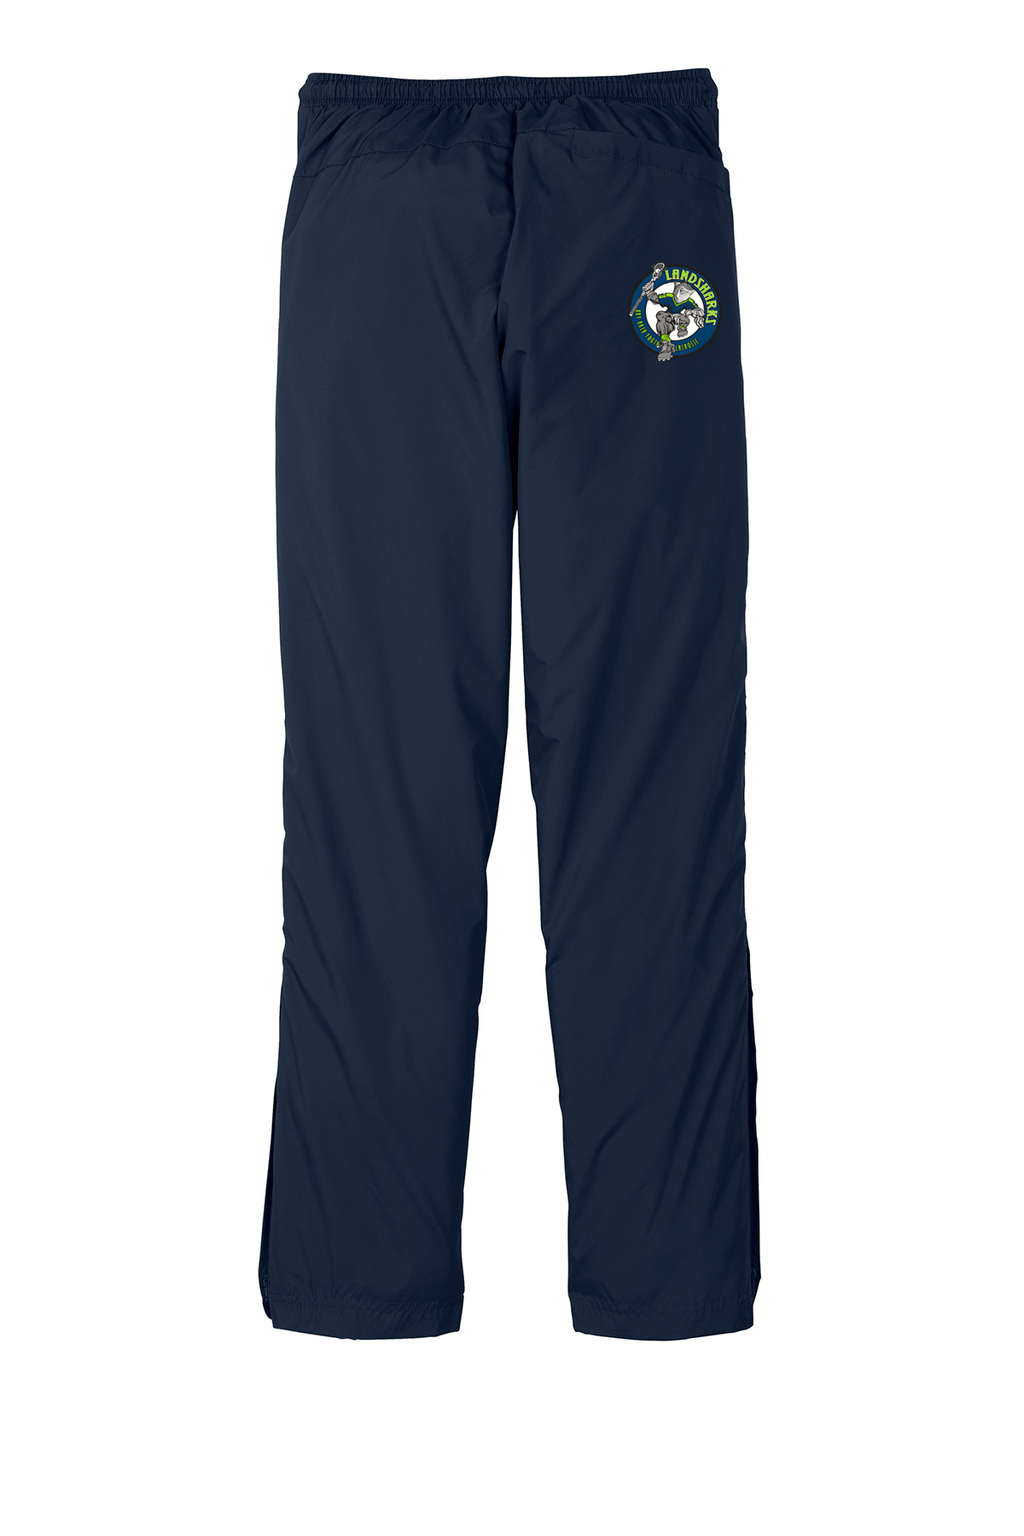 Bay Area Landsharks Rain/Wind Pants